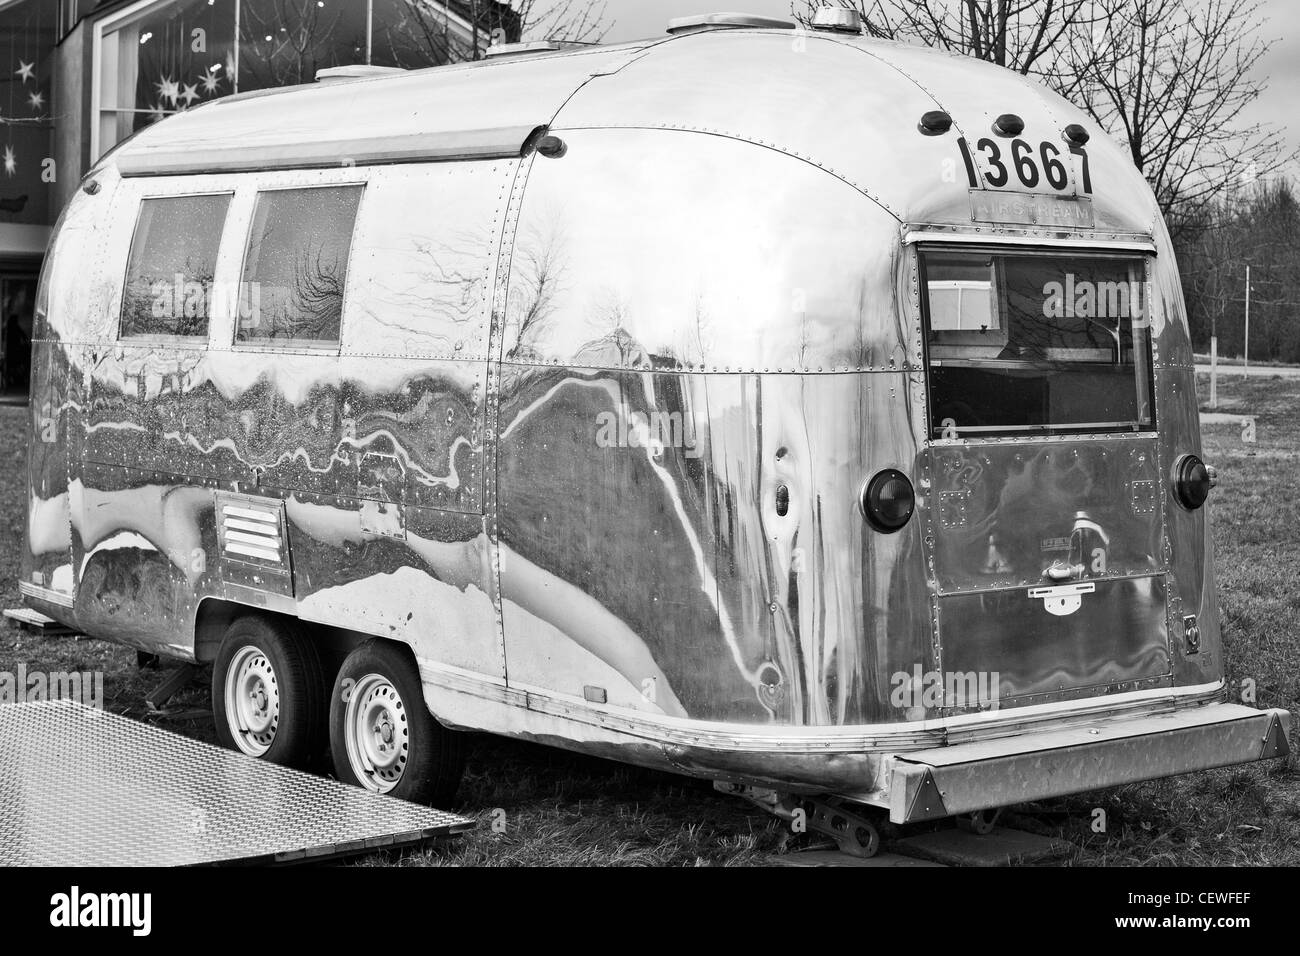 Silver Airstream caravan in the grounds of the Vitra Design Museum, Weil Am Rhein, Germany - Stock Image